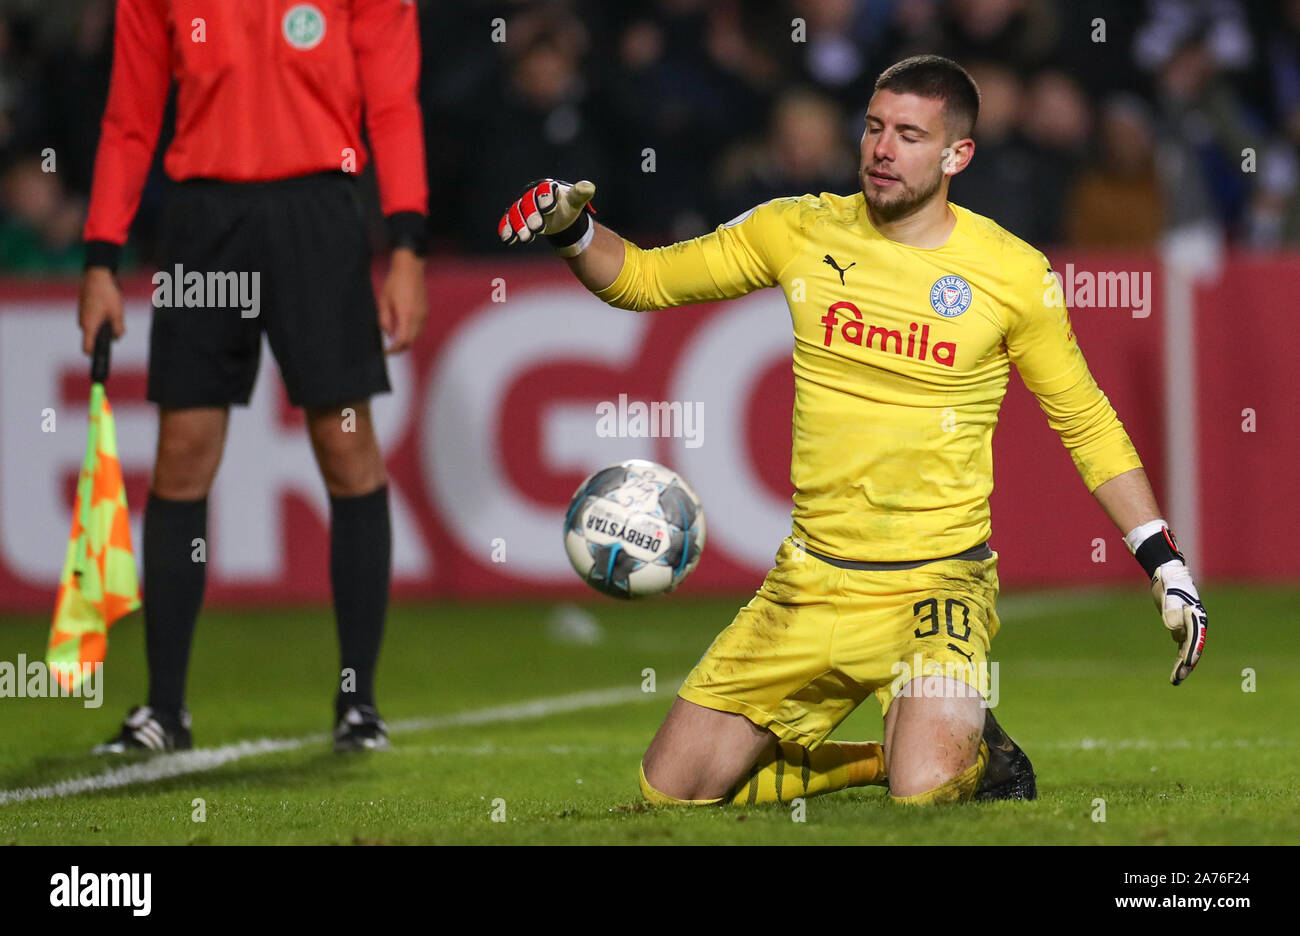 Verl Germany 30th Oct 2019 Soccer Dfb Cup 2nd Round Sc Verl Holstein Kiel In The